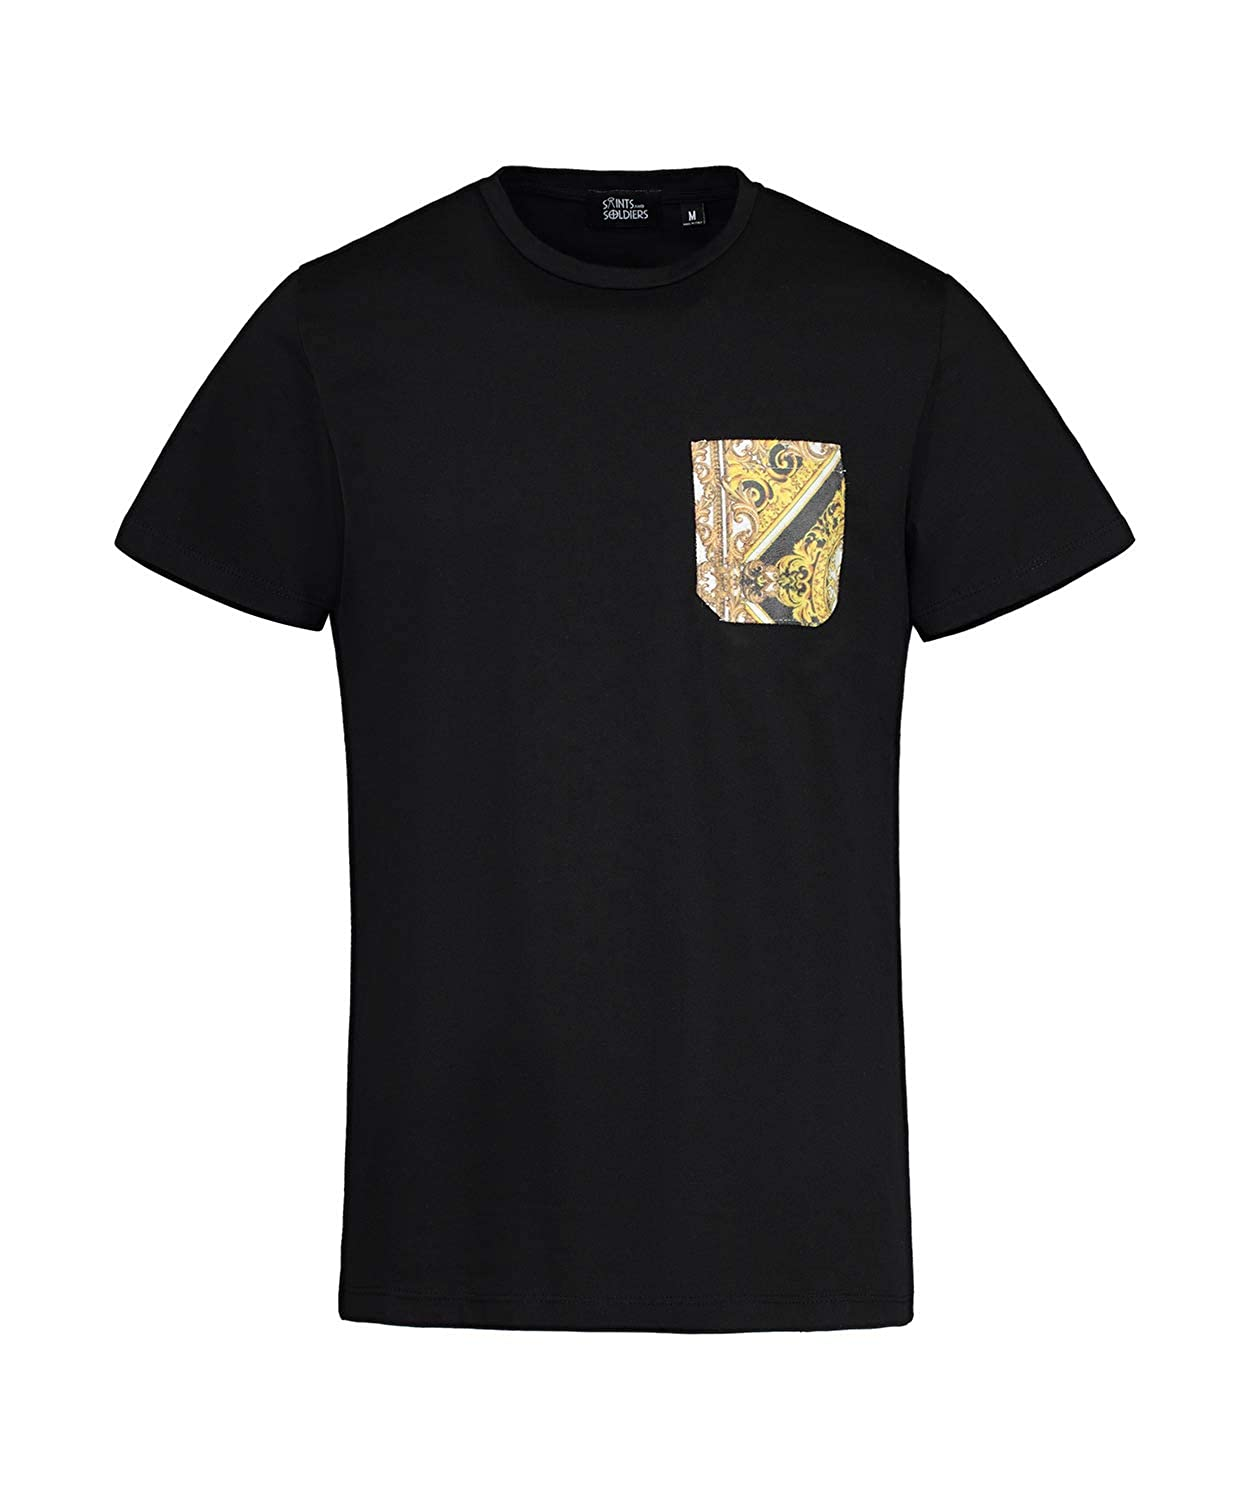 d7ea1ecdf Saints and Soldiers Men's Versace Inspired Printed Pocket tee Shirt, Made  in Italy | Amazon.com